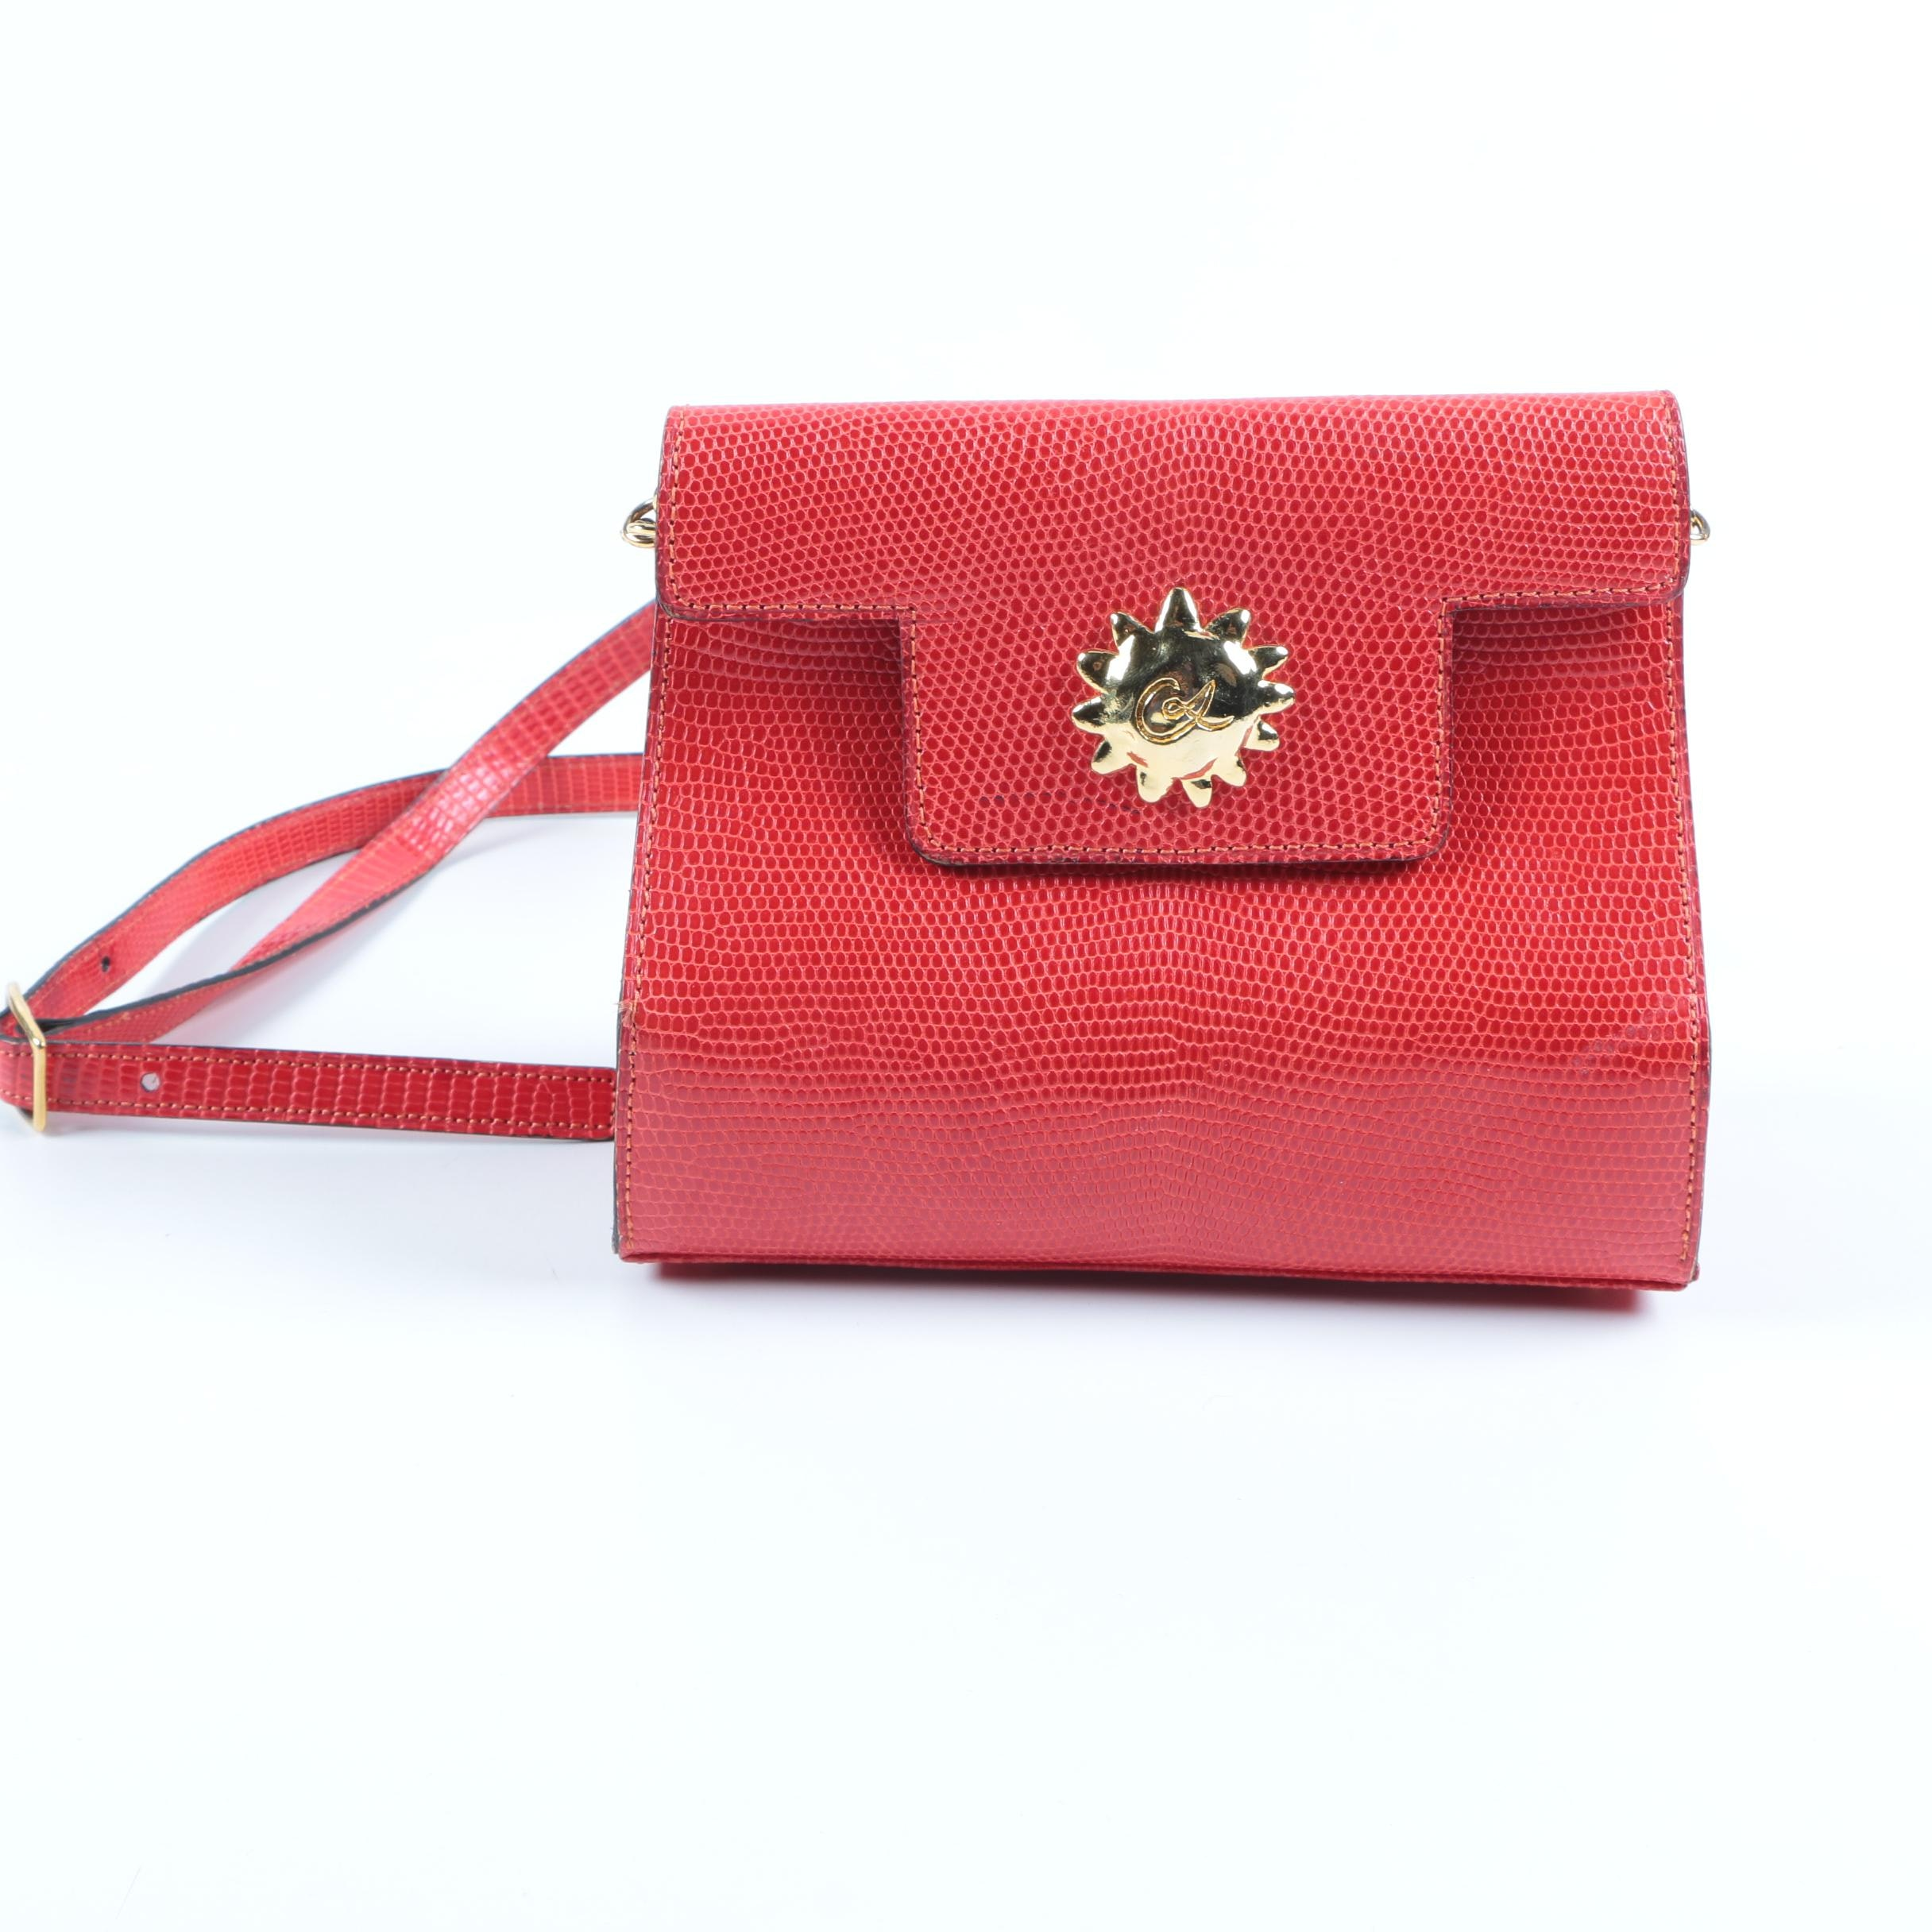 Christian Lacroix Red Leather Crossbody Bag